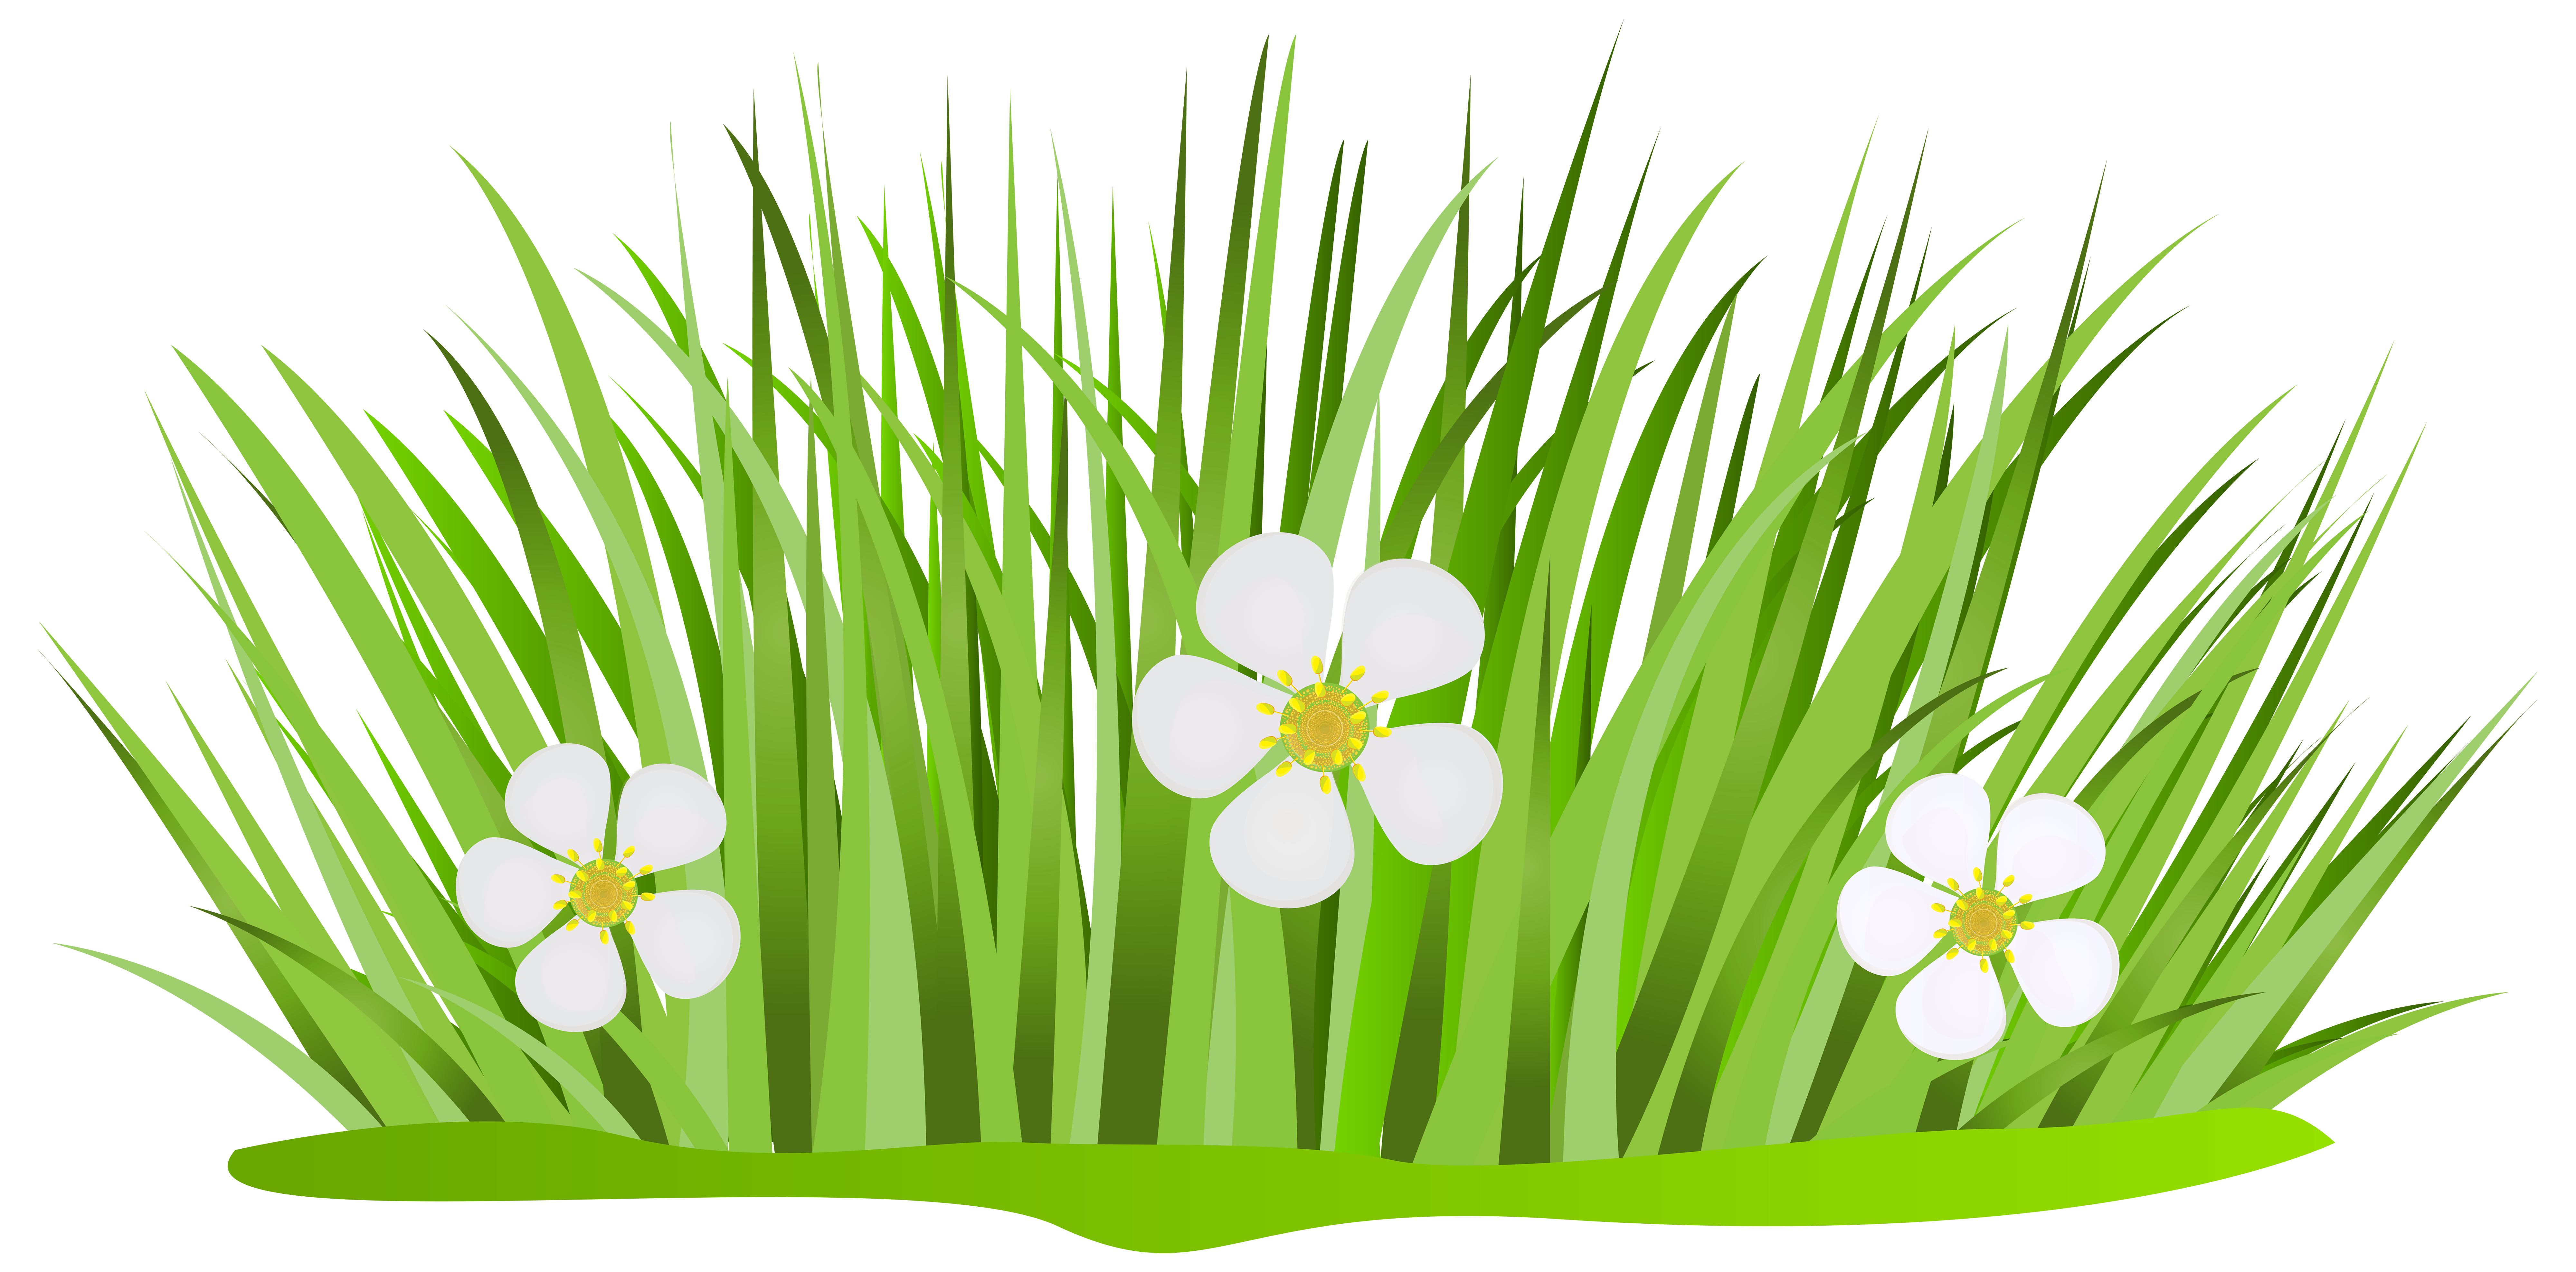 Grass patch clipart vector black and white Grass Patch with Flowers PNG Clip Art Image | Gallery Yopriceville ... vector black and white